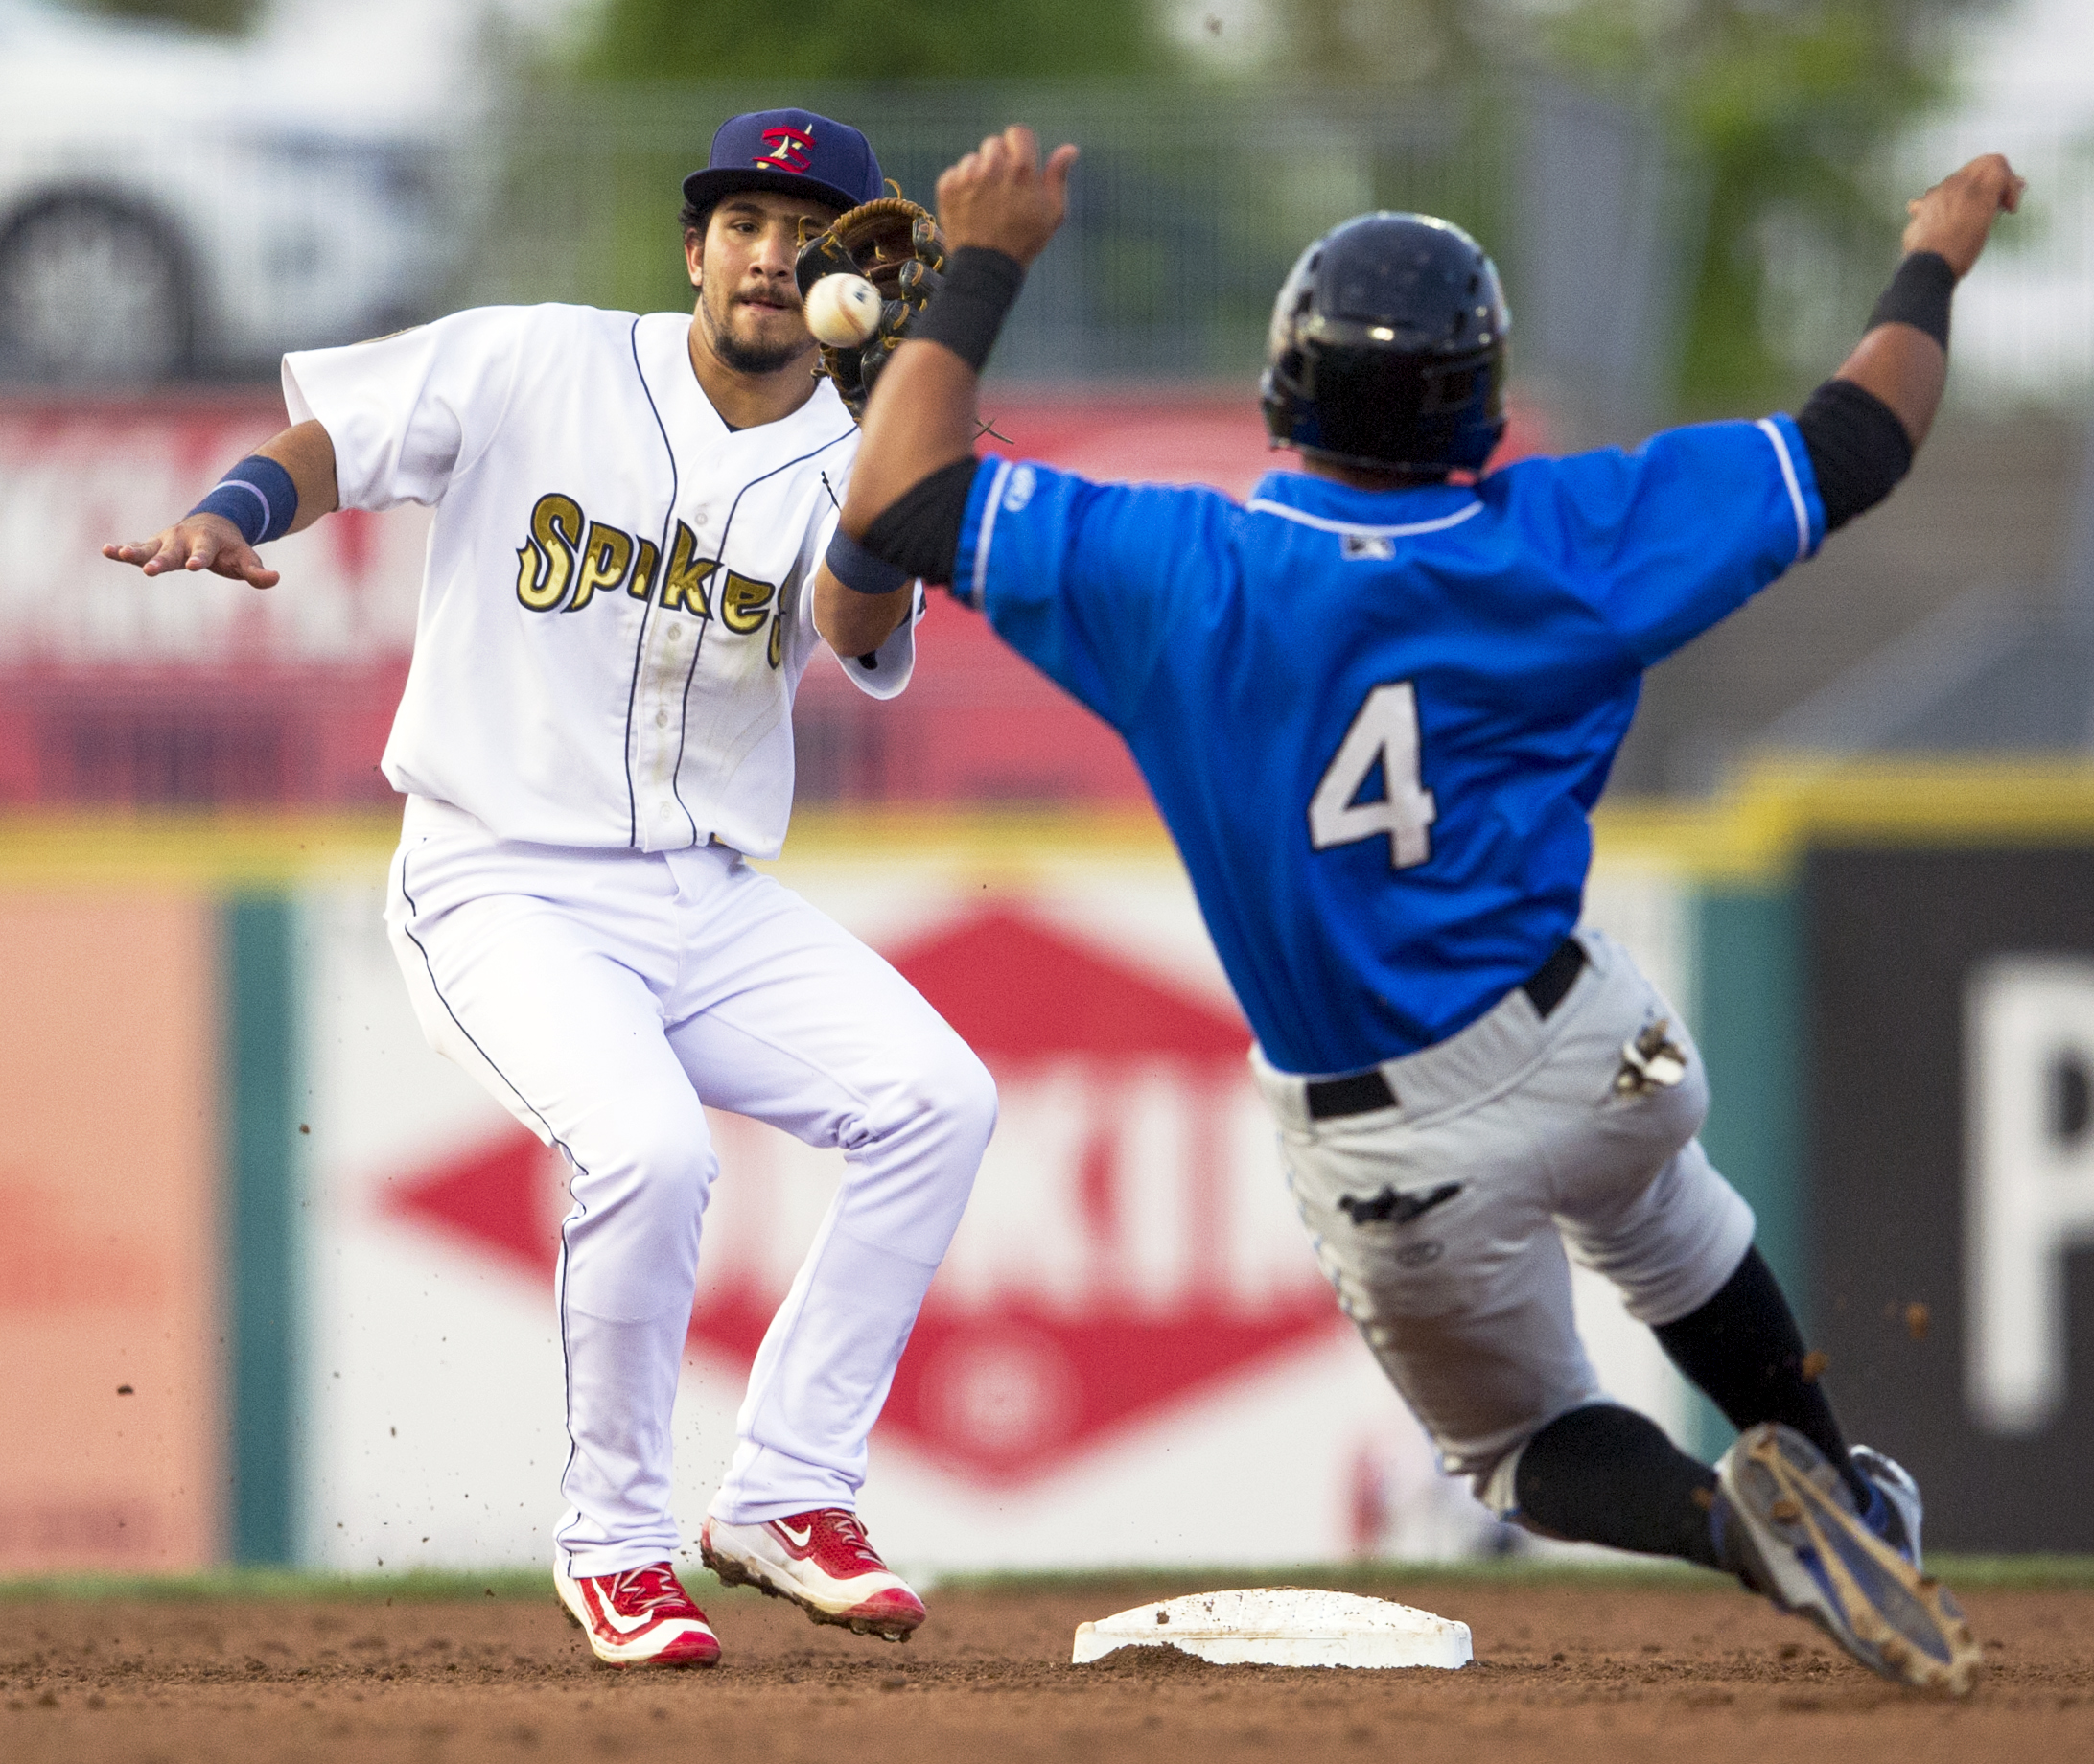 State College Spikes short stop Jose Martinez catches the ball to tag out Hudson Valley Renegades center fielder Oscar Rojas as he slides to second base during the second game of the series at Medlar Field on Monday, June 20, 2016.